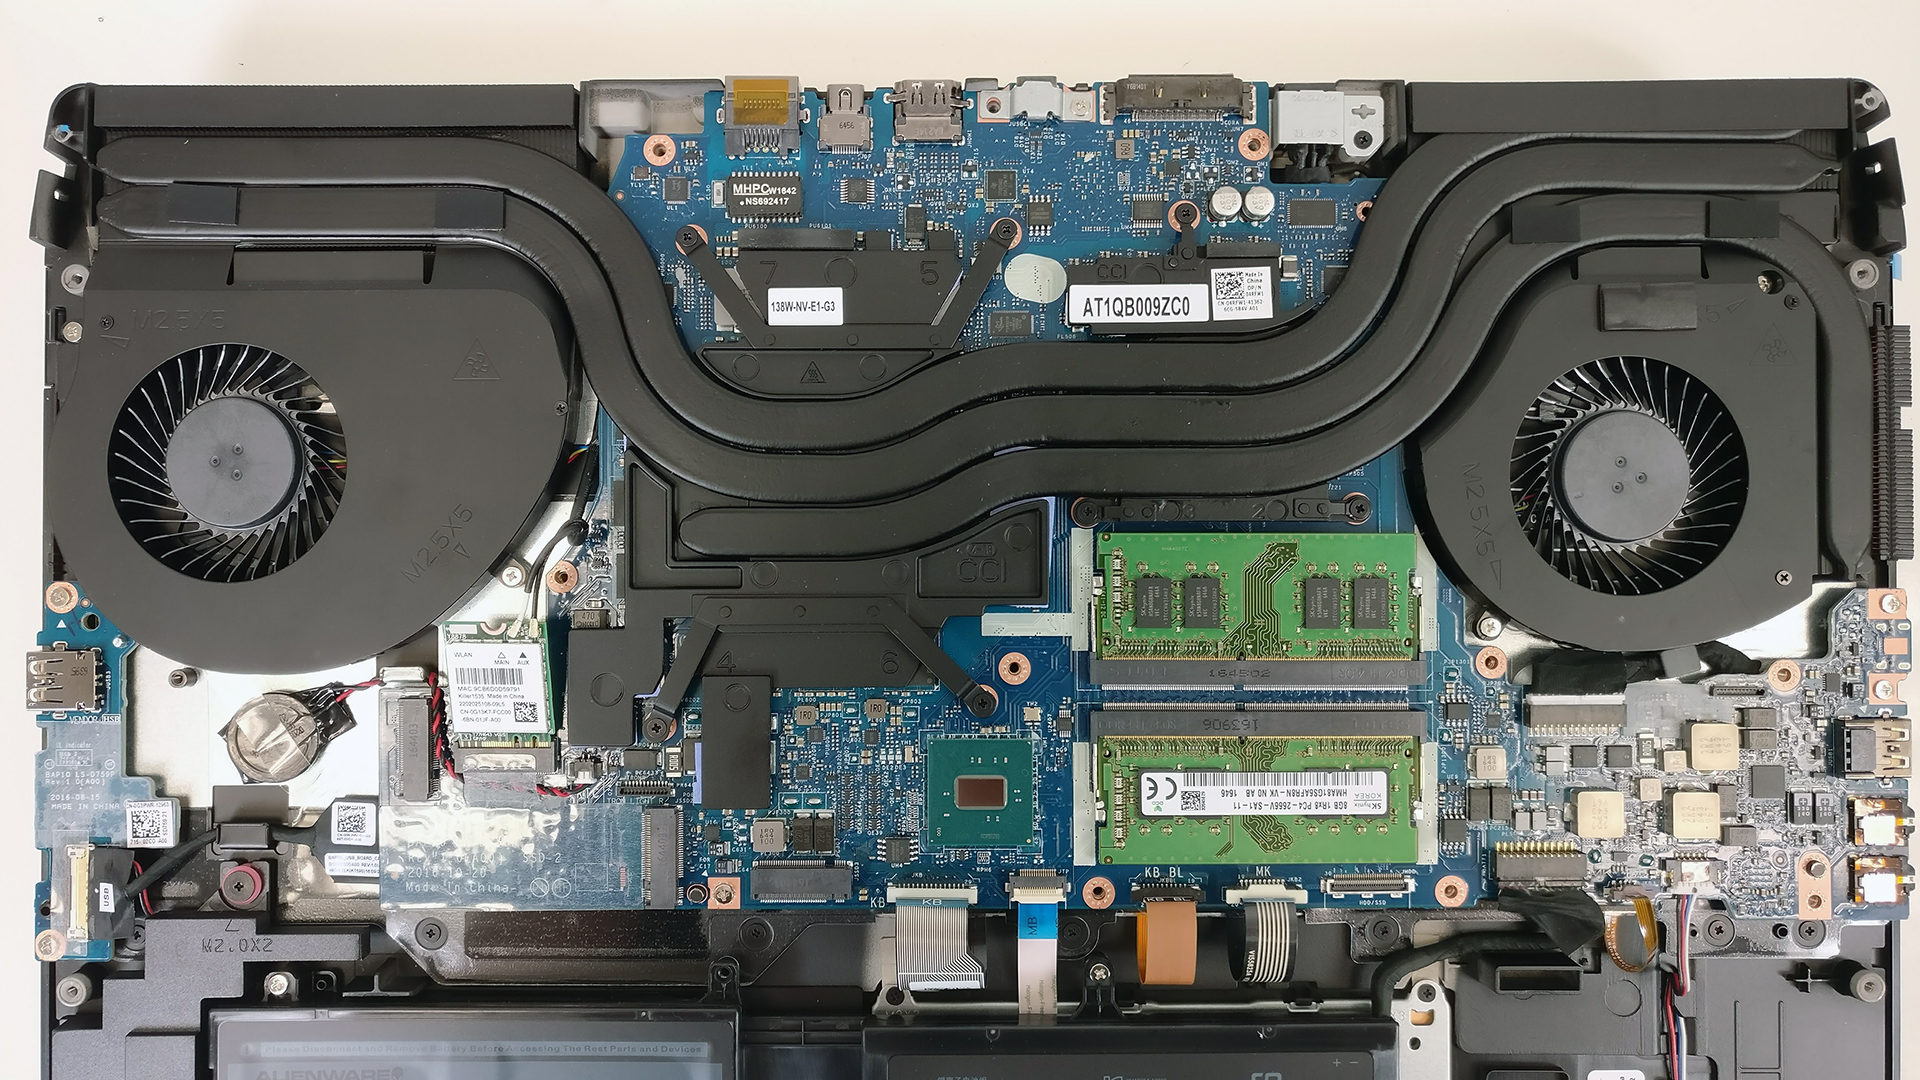 Inside Alienware 17 R4 – disassembly, internal photos and